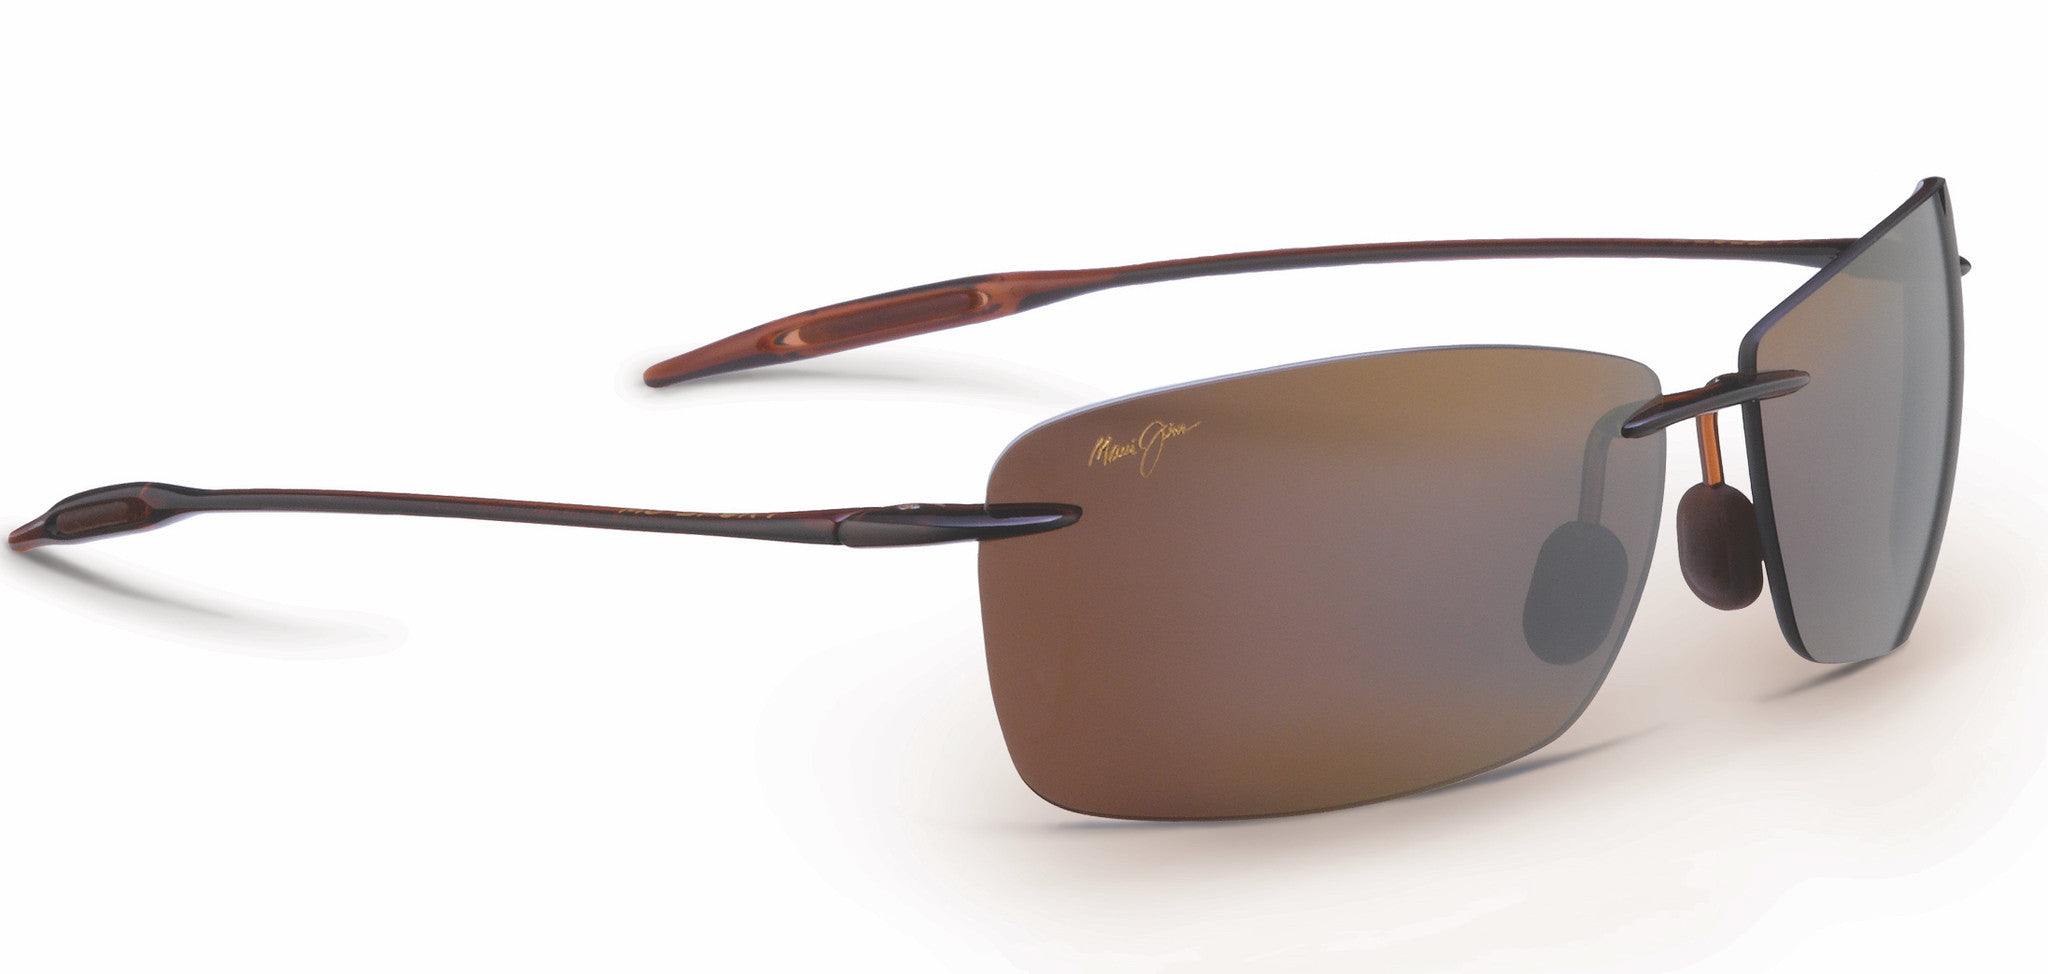 f1c795aa0d49 Maui Jim Lighthouse H423-26 Rooter with Polarized HCL Bronze Lenses -  Flight Sunglasses